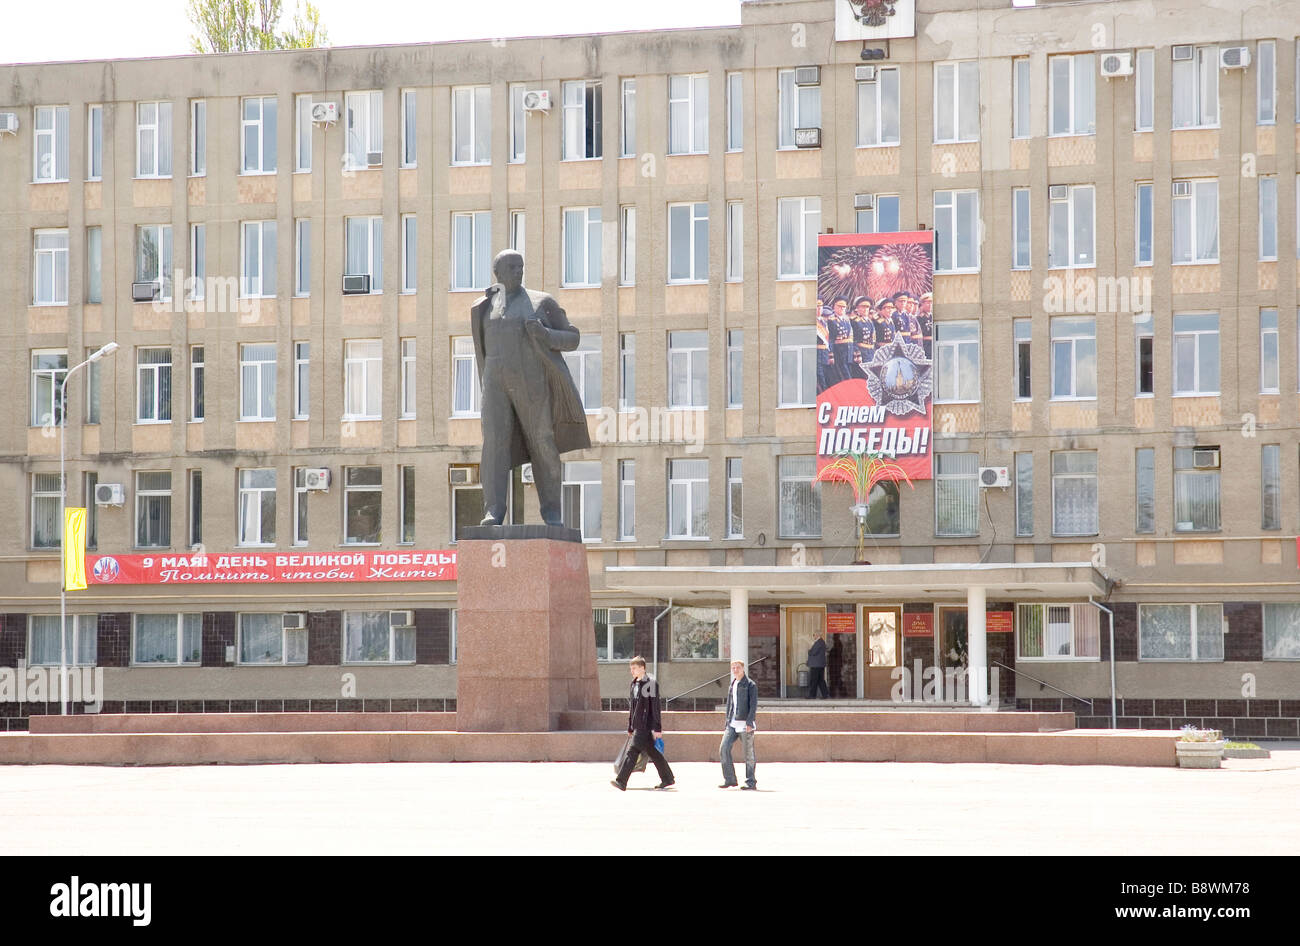 scene from the square in georgievsk southwestern russia with lenin statue as is common in most russian cities - Stock Image